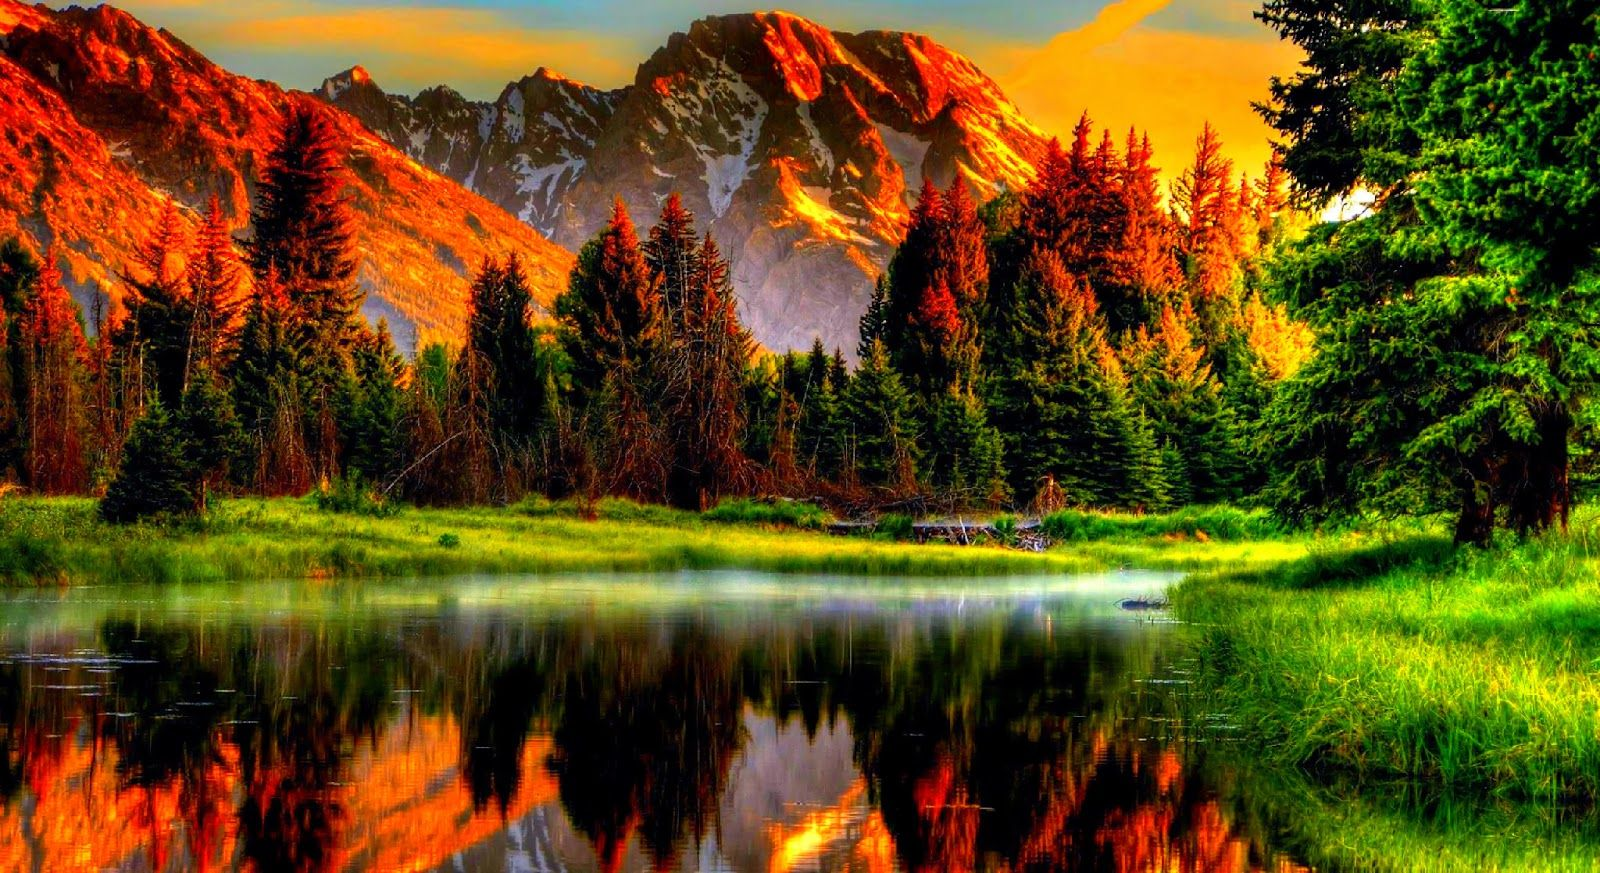 Download Beautiful Scenery Wallpapers Scenery Wallpaper Beautiful Scenery Wallpaper Beautiful Scenery Pictures